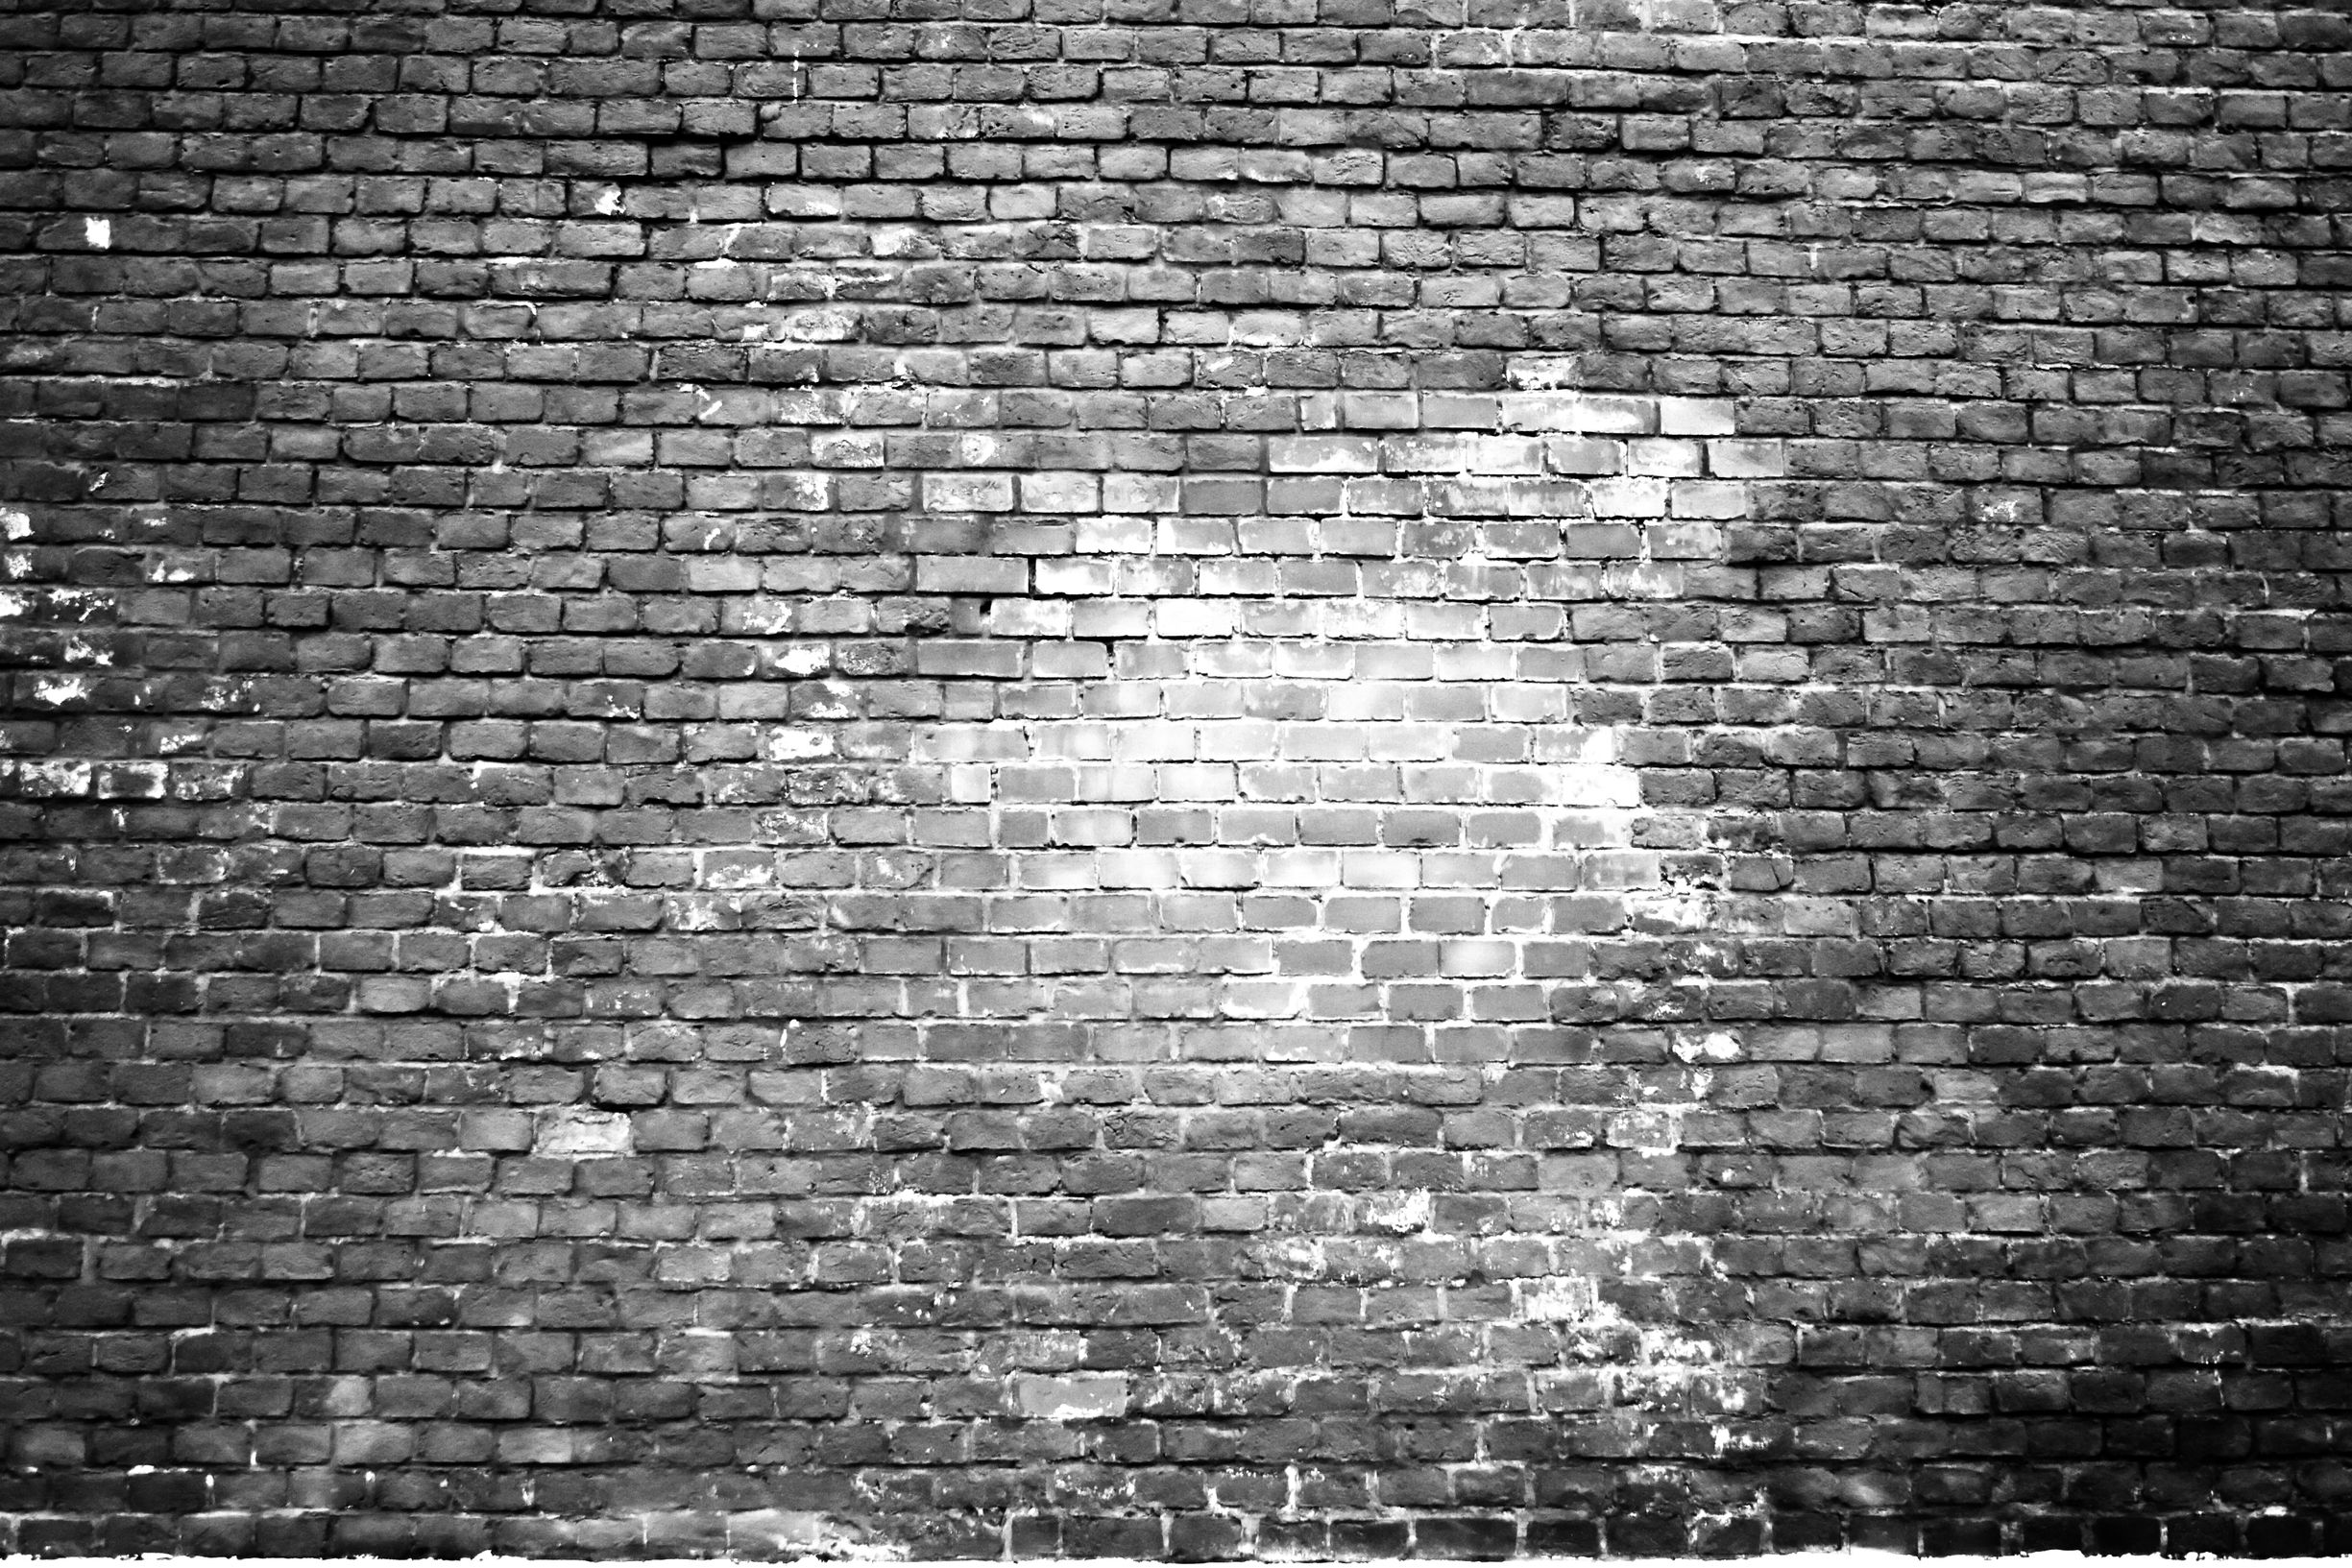 Brick Wall High Res Jpg 2449 1633 Brick Wall Brick White Brick